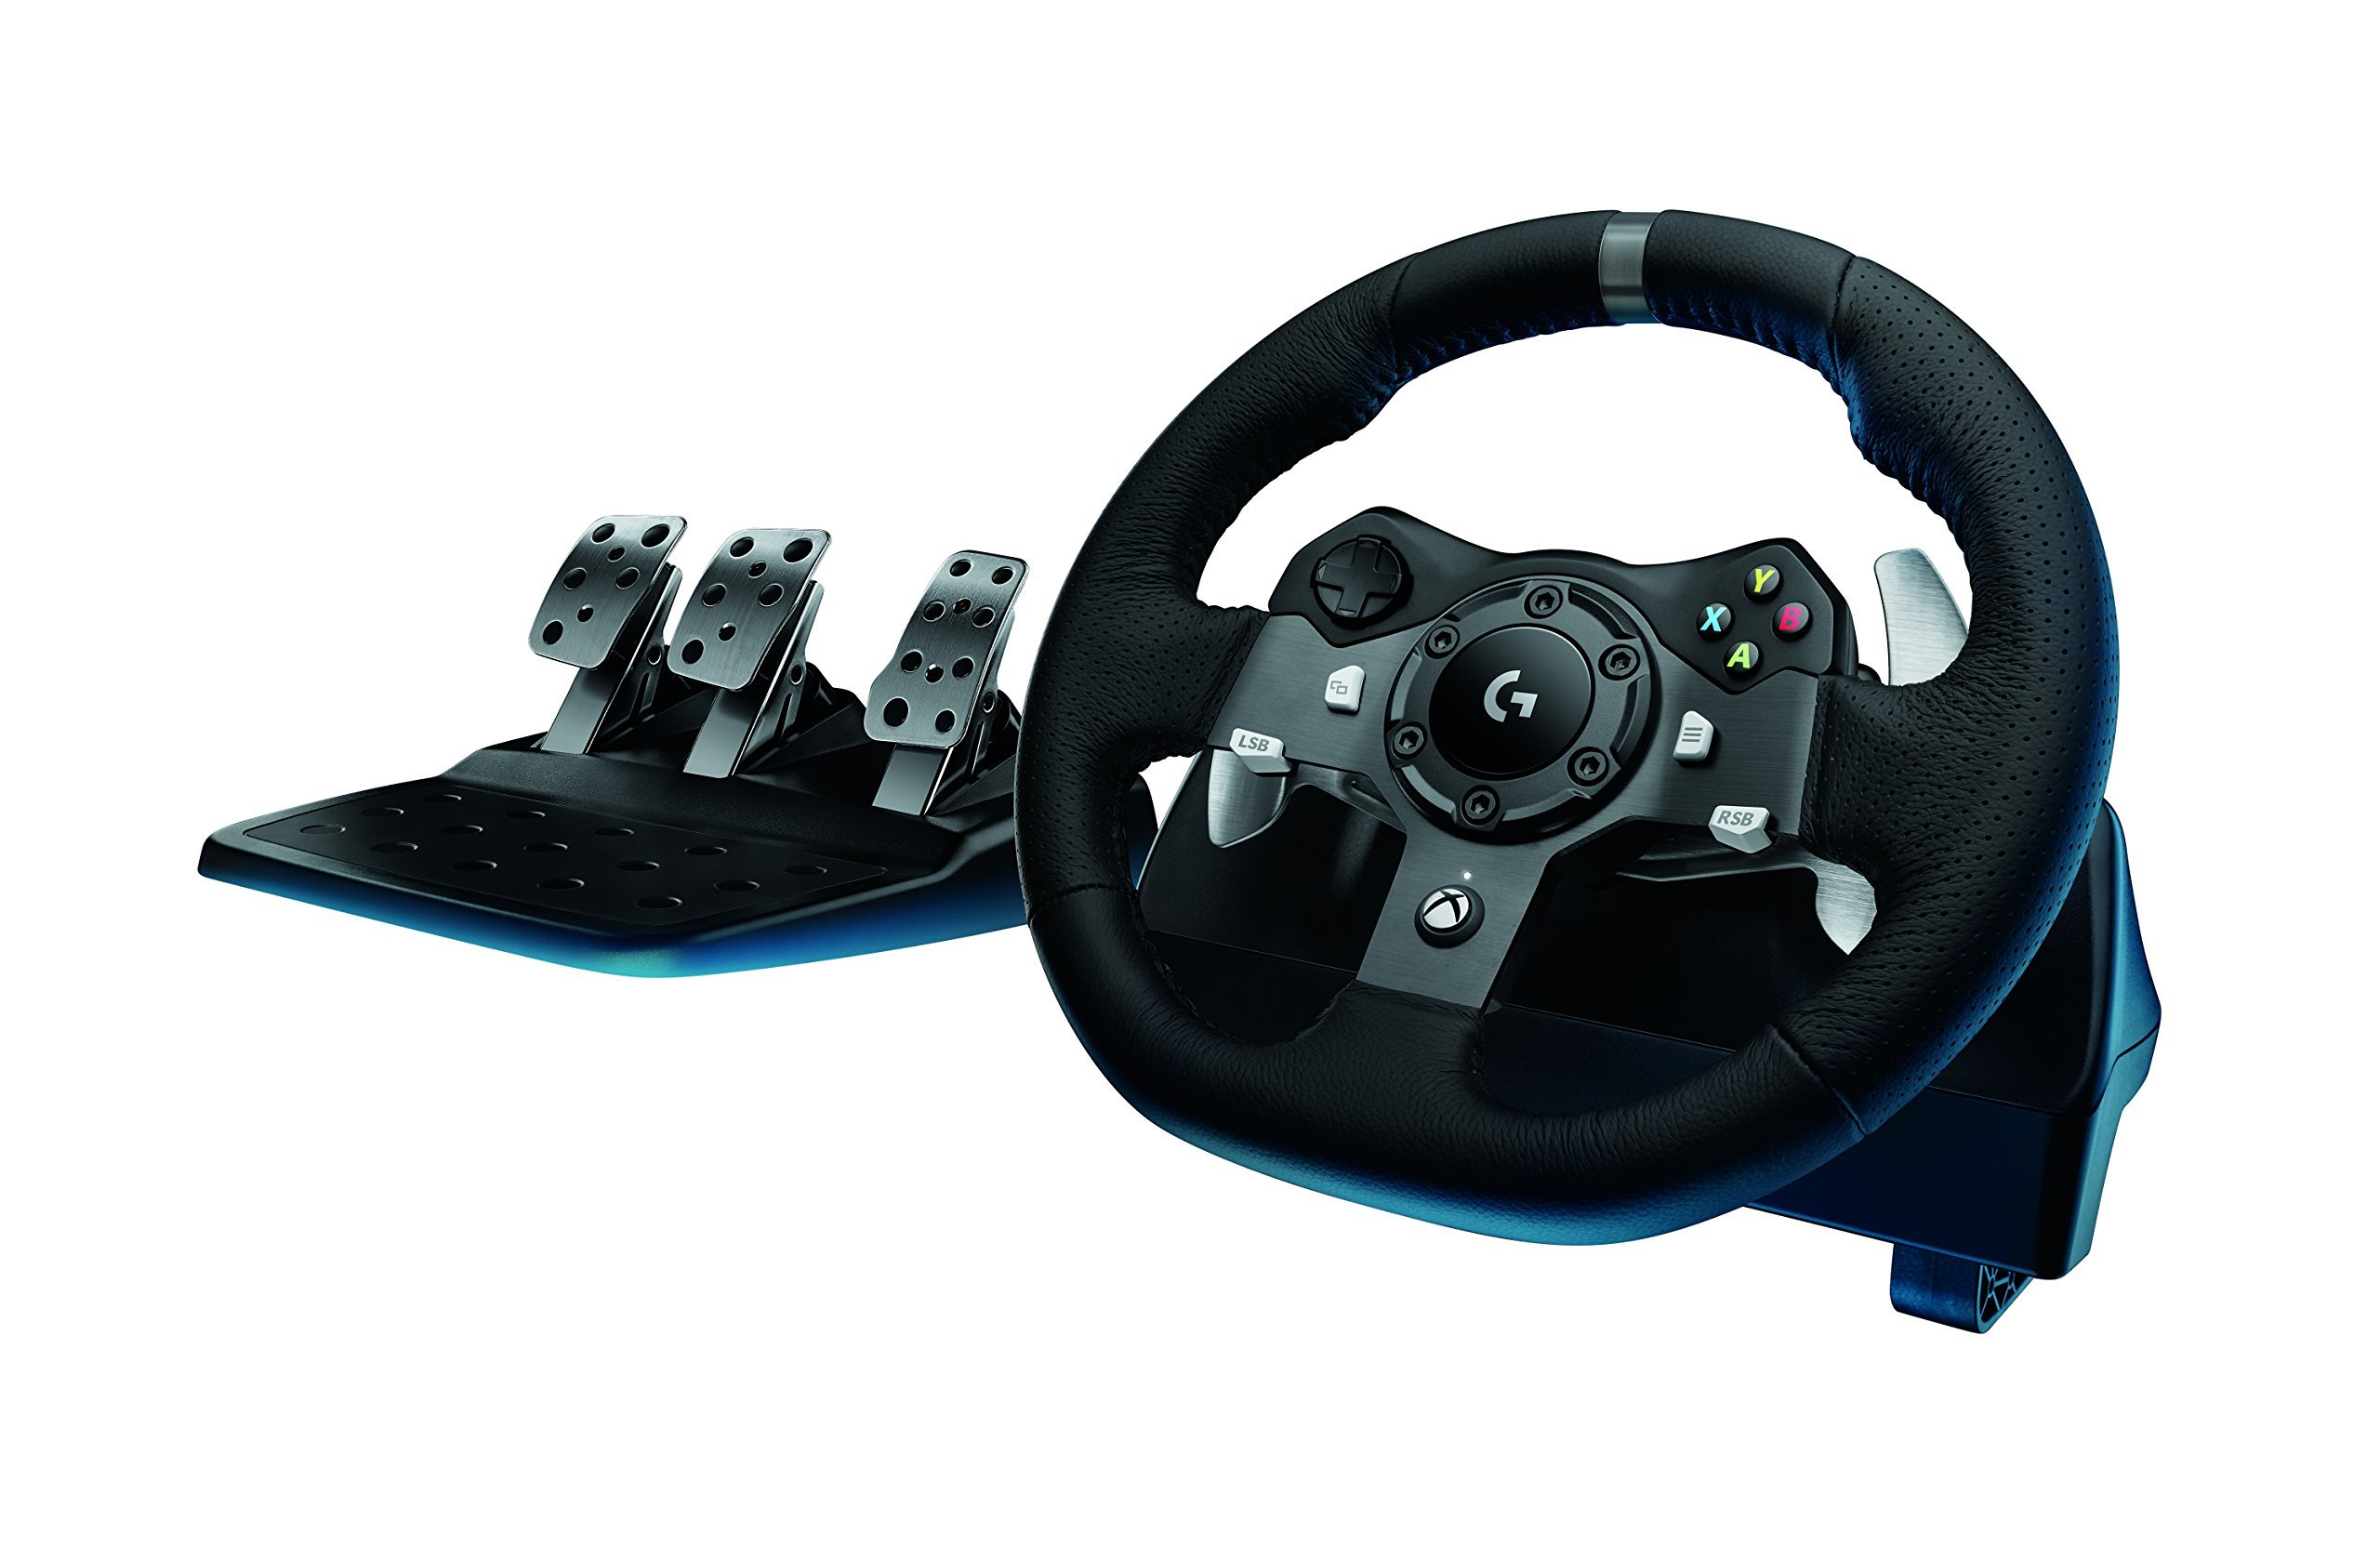 Logitech G920 Dual-motor Feedback Driving Force Racing Wheel with Responsive Pedals for Xbox One by Logitech